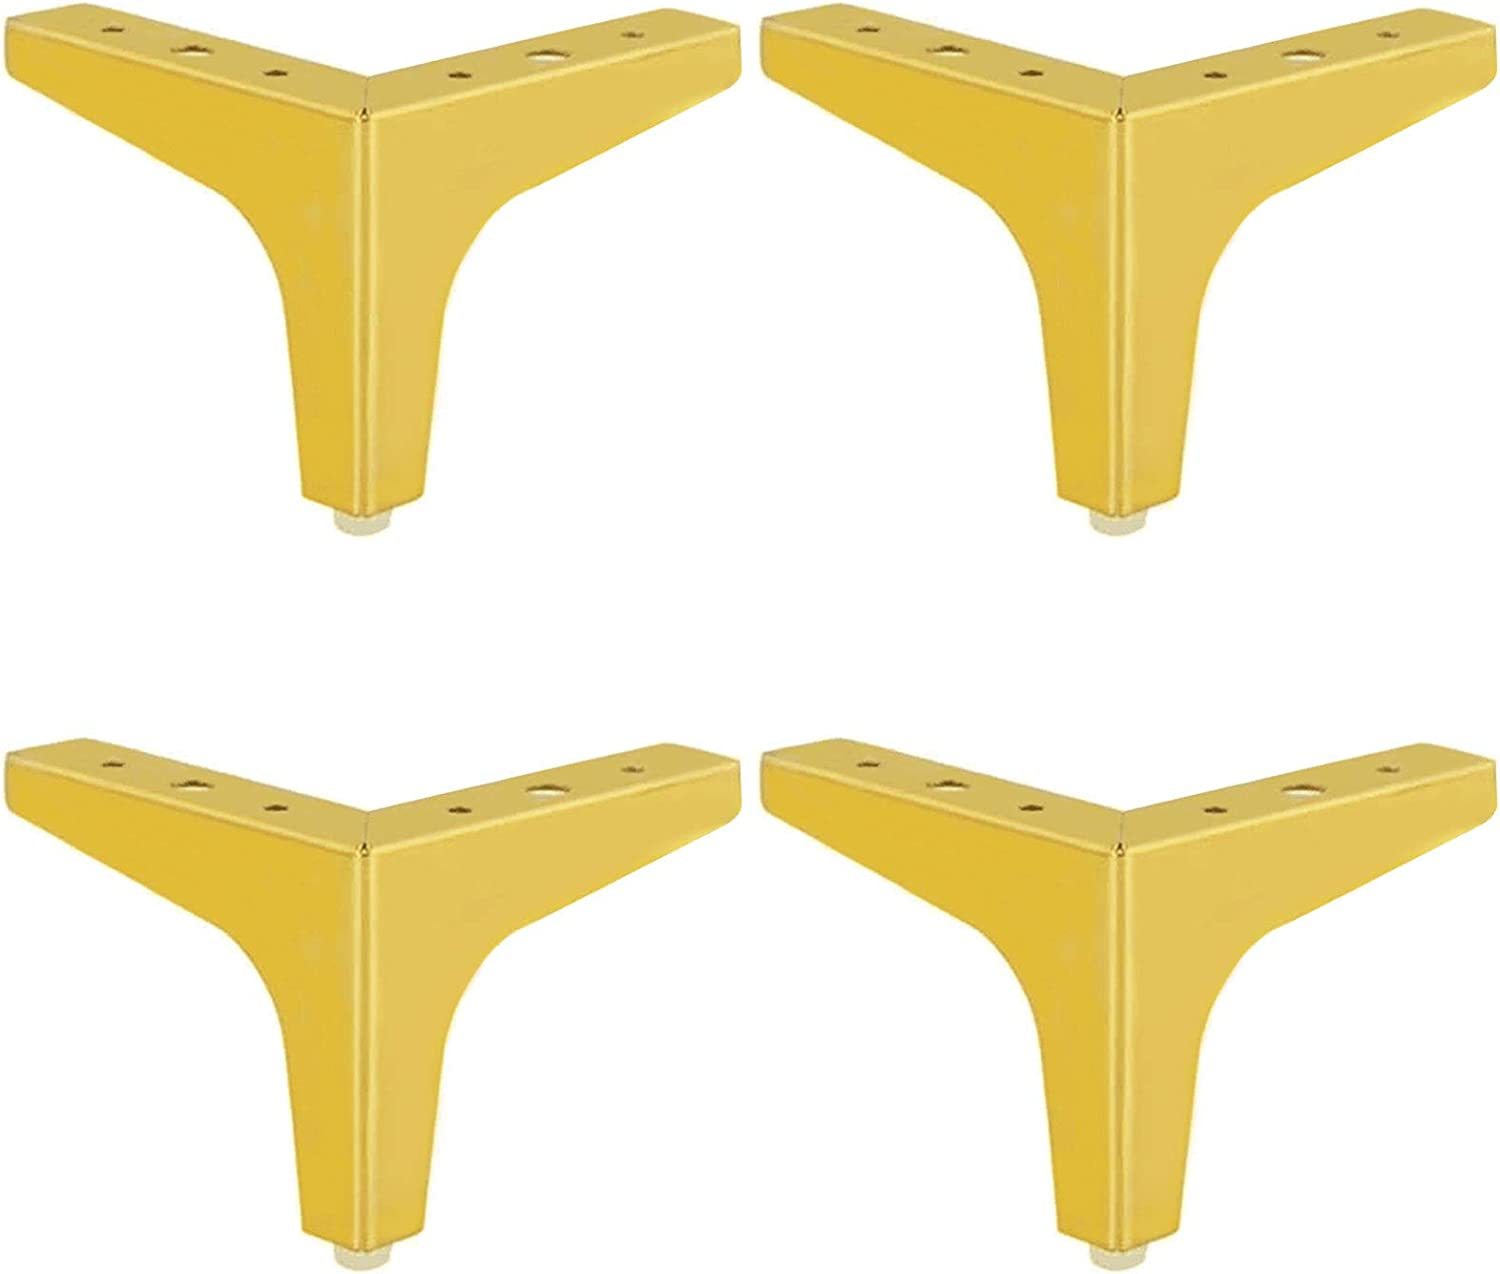 """Gold Furniture Legs - 4"""" Iron Sofa Legs Heavy Duty Triangle Cabinet Feet - Verified Lab Test Supports + 1000 pounds - 4 Piece Set"""